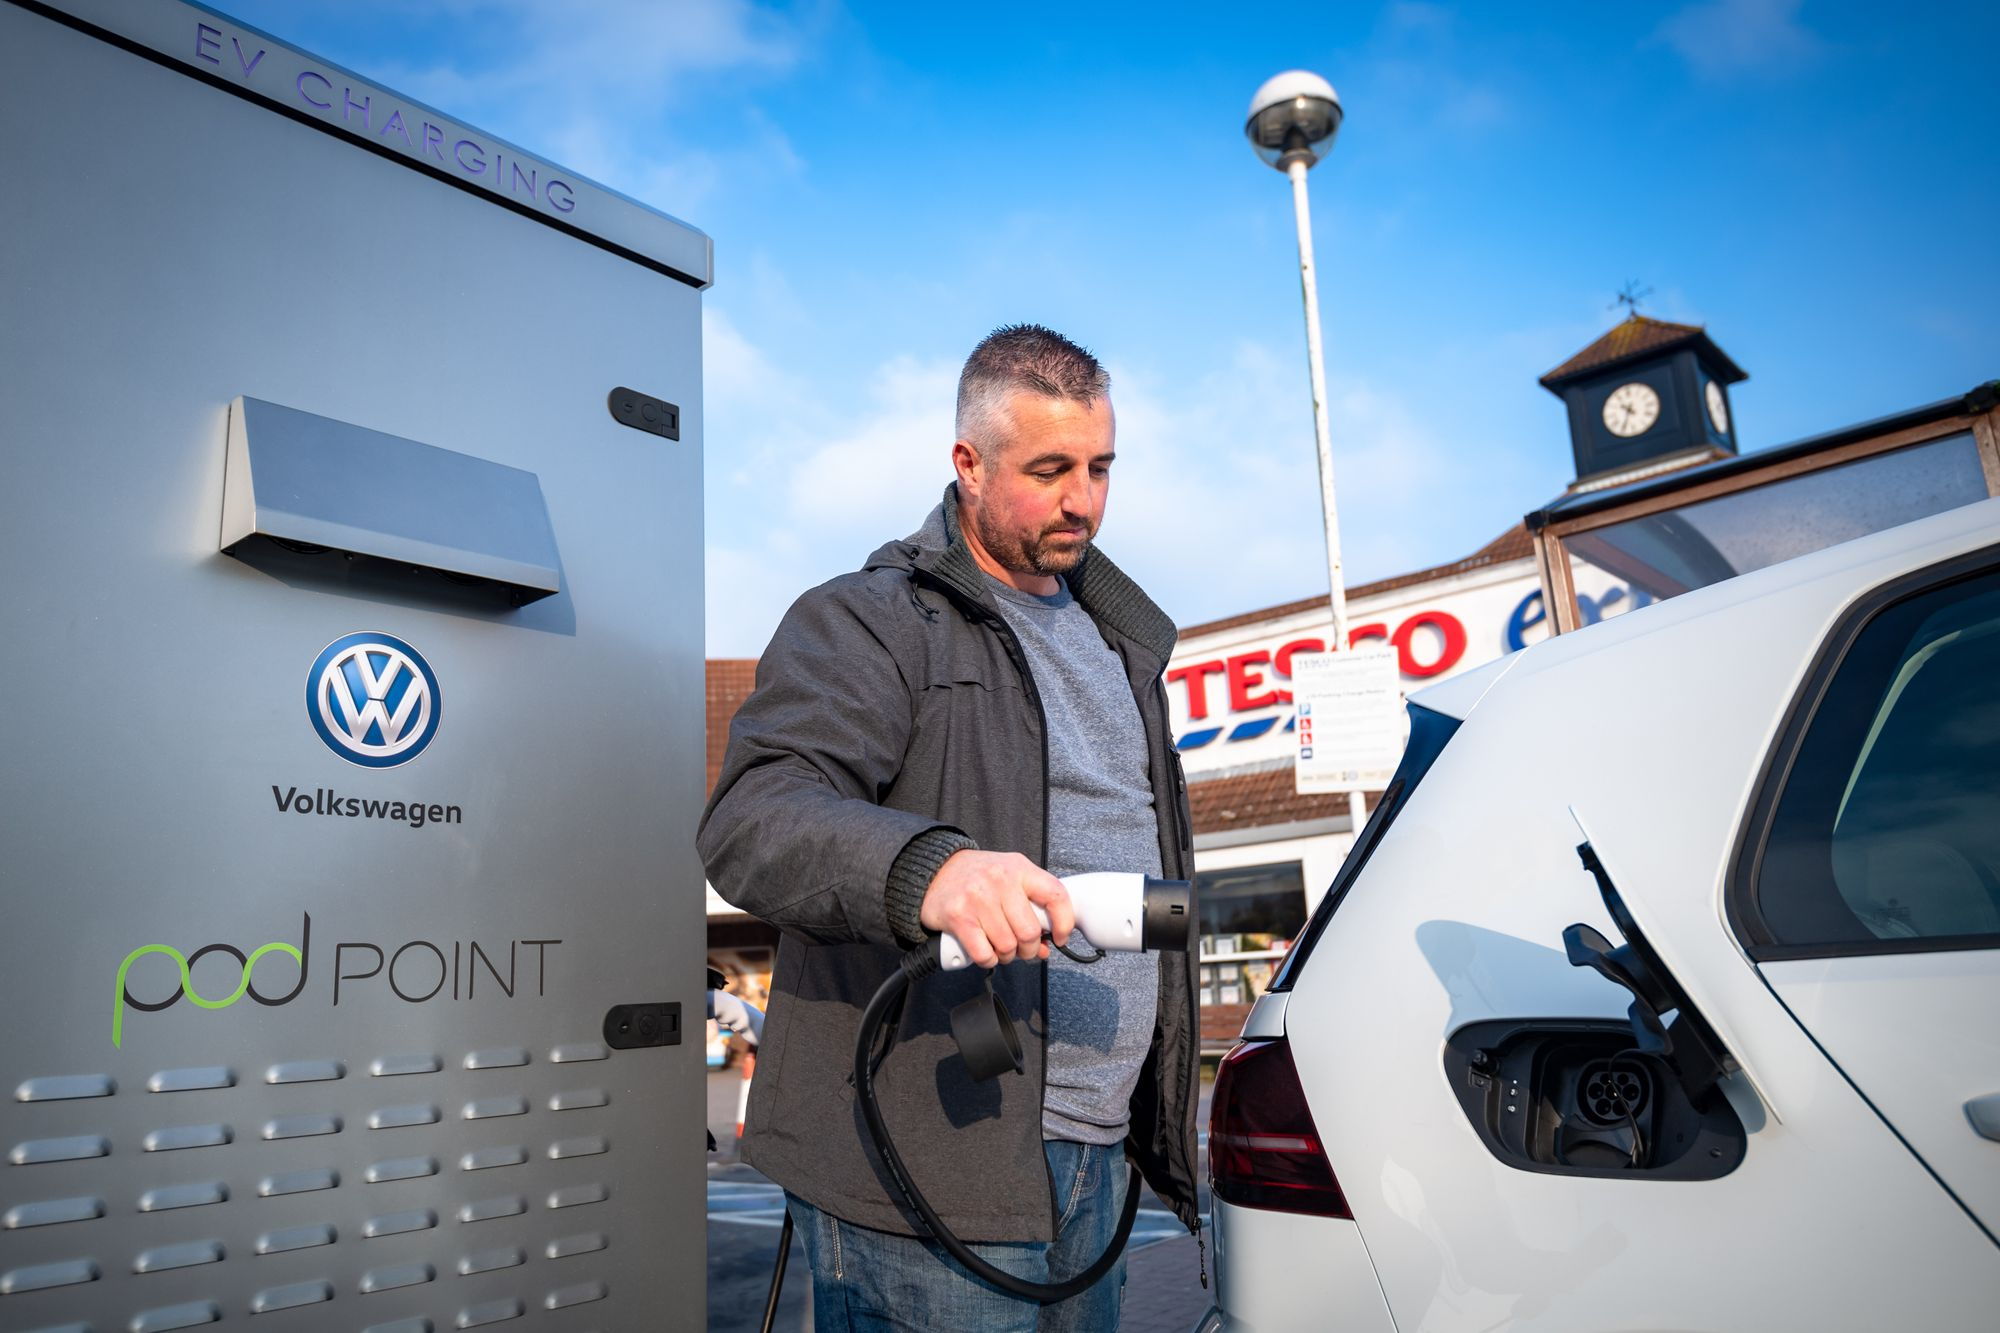 Pod Point & Volkswagen have teamed up with Tesco to offer EV charging while you shop